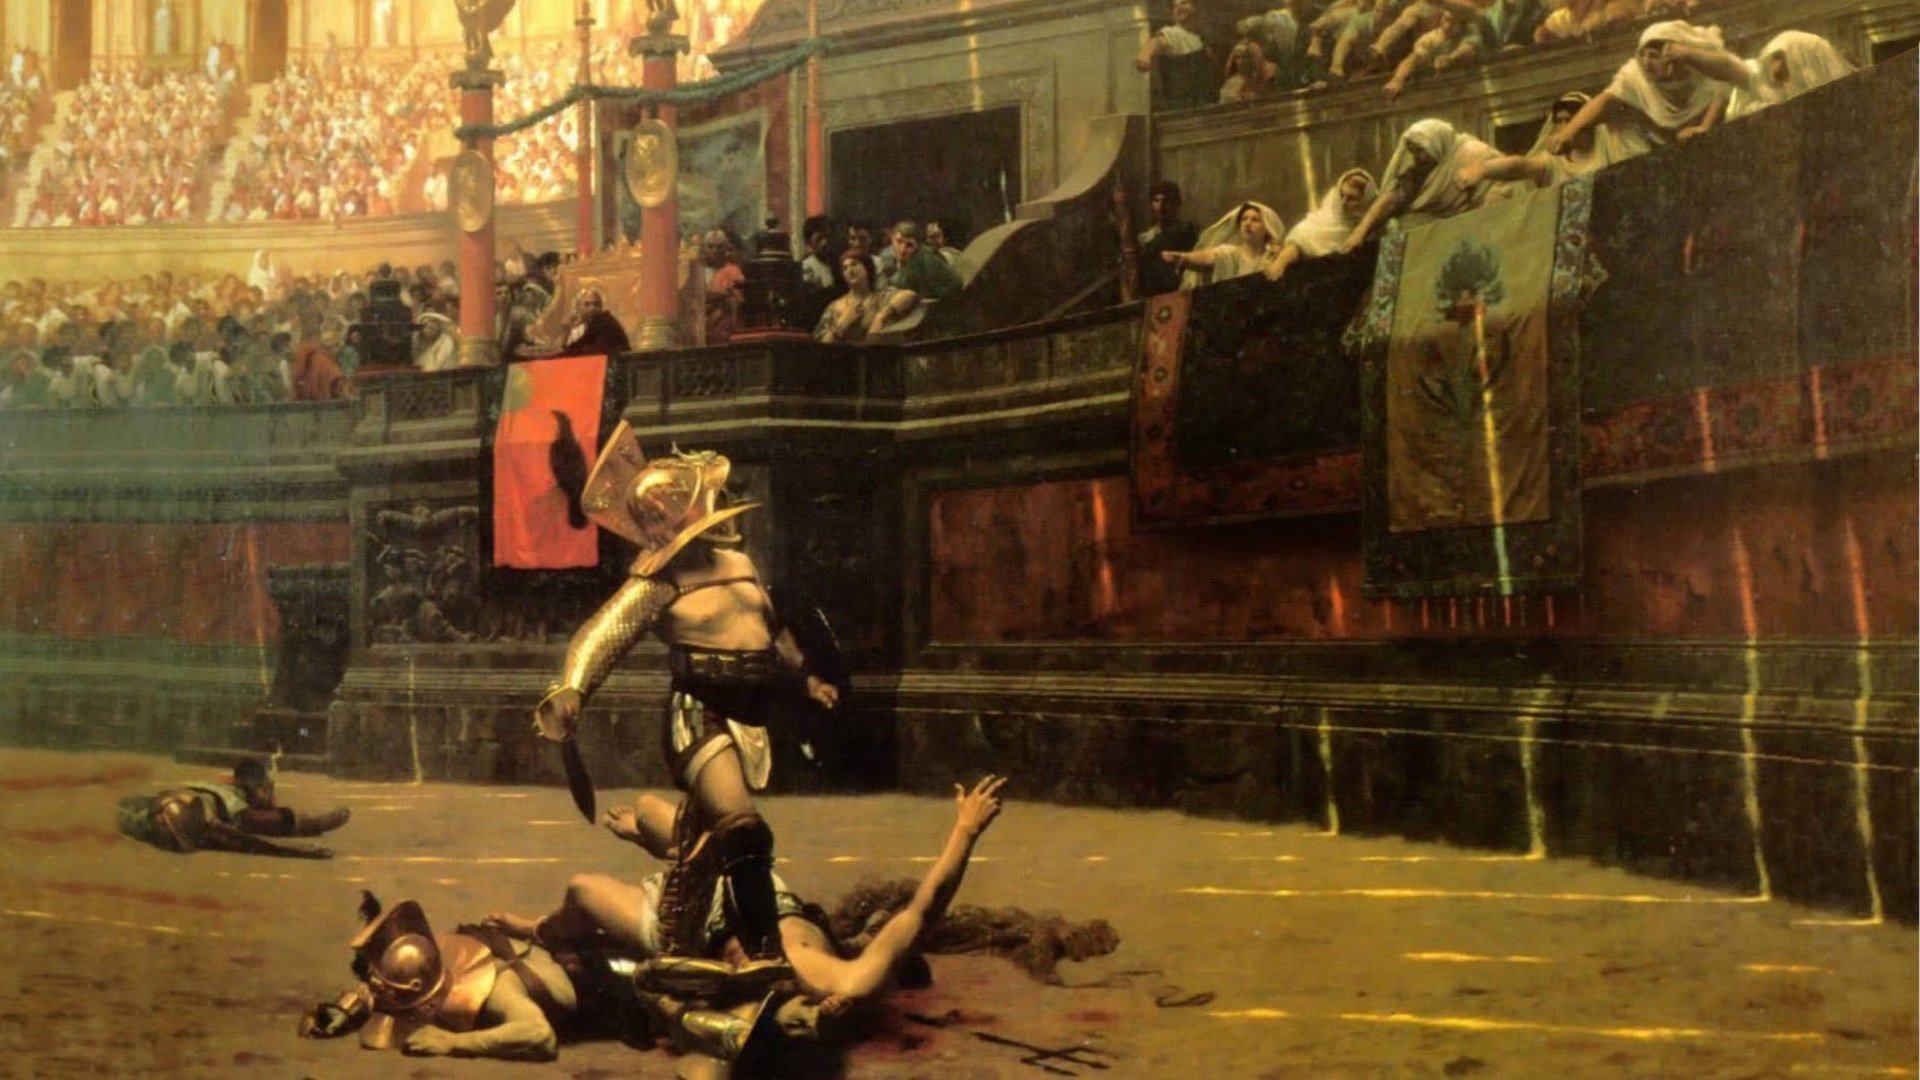 Artistic - Painting  Rome Gladiator Artistic Wallpaper